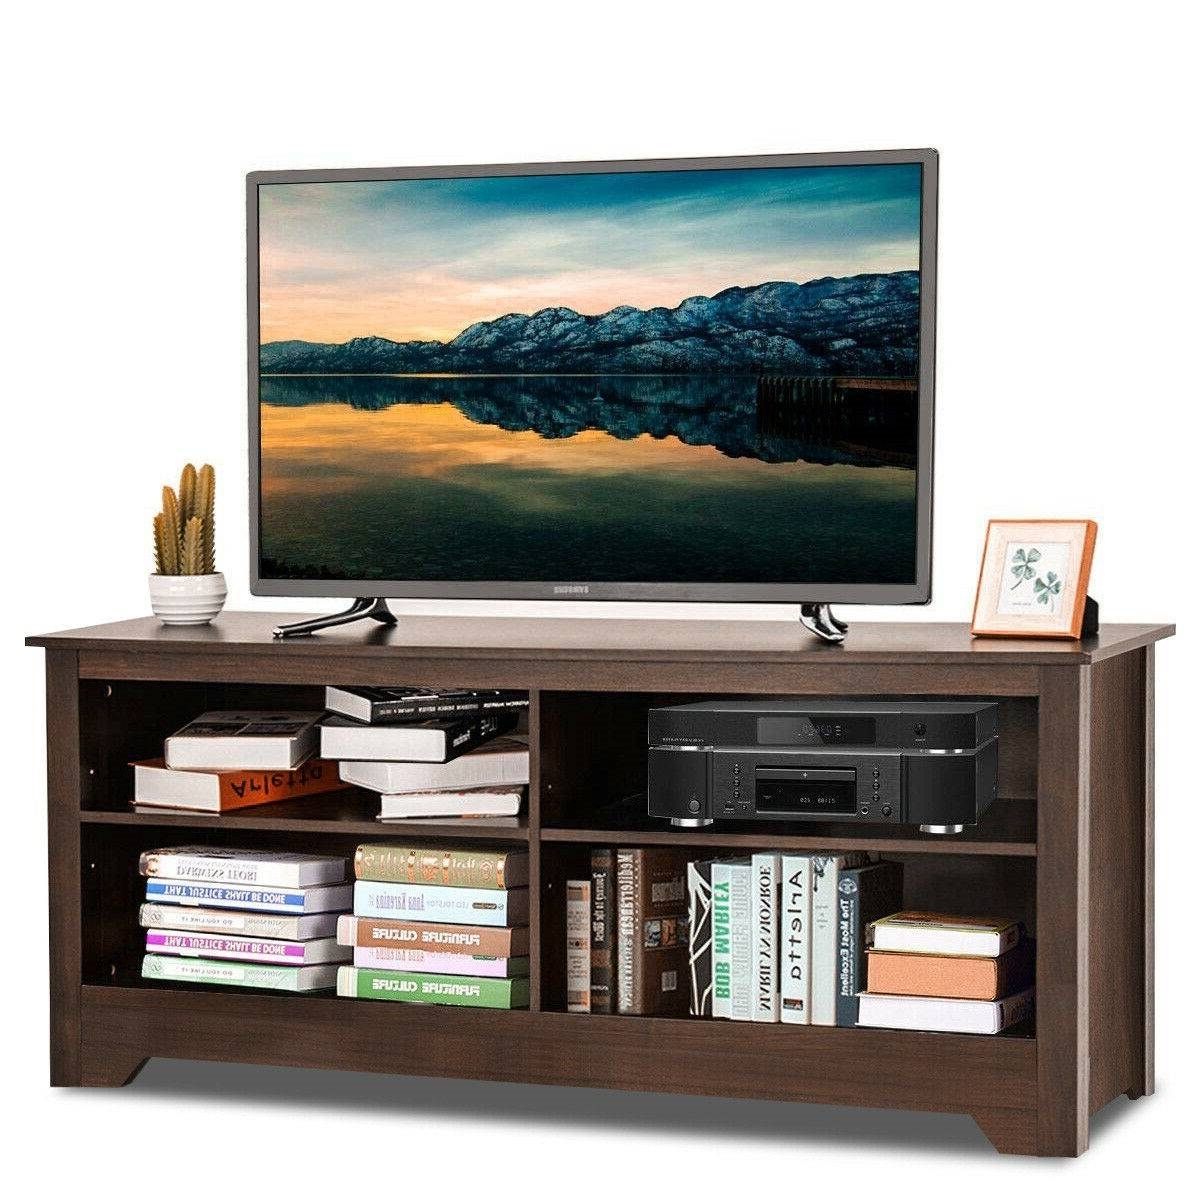 Contemporary TV Stand For Up To 60 Inch TV In Espresso Finish |  Fastfurnishings.com